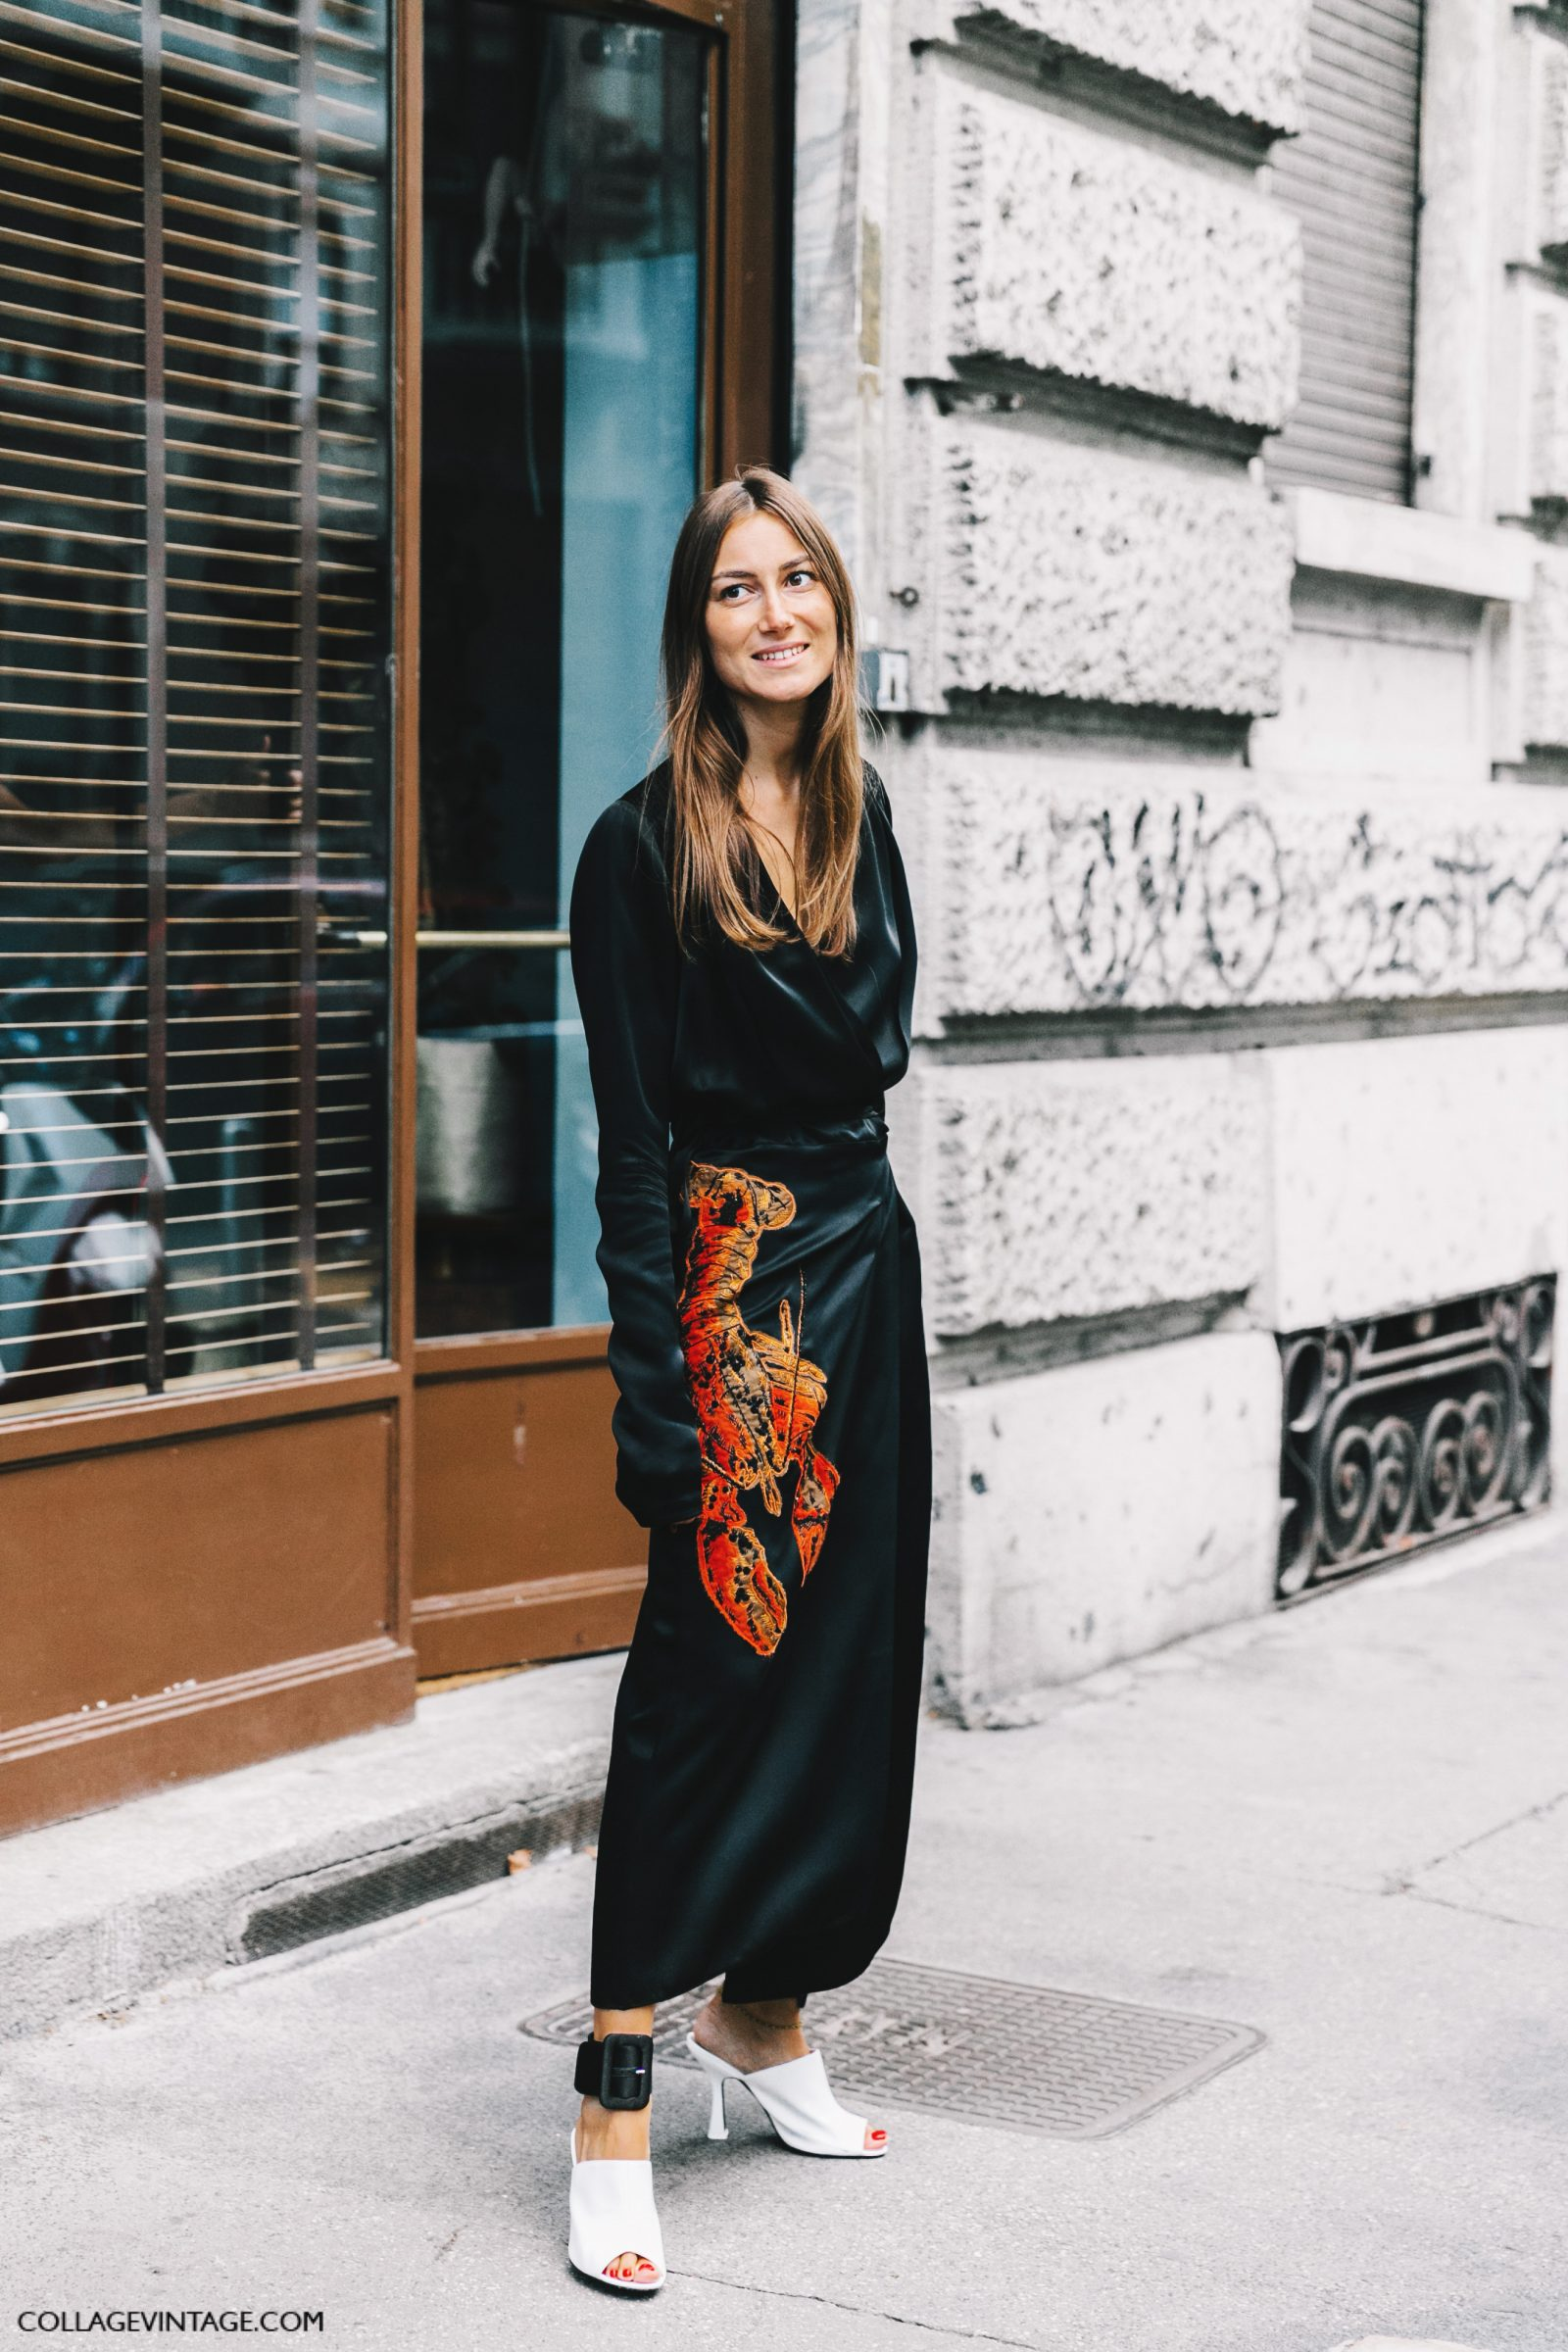 Street Style At London Fashion Week With Anouk: MFW Street Style